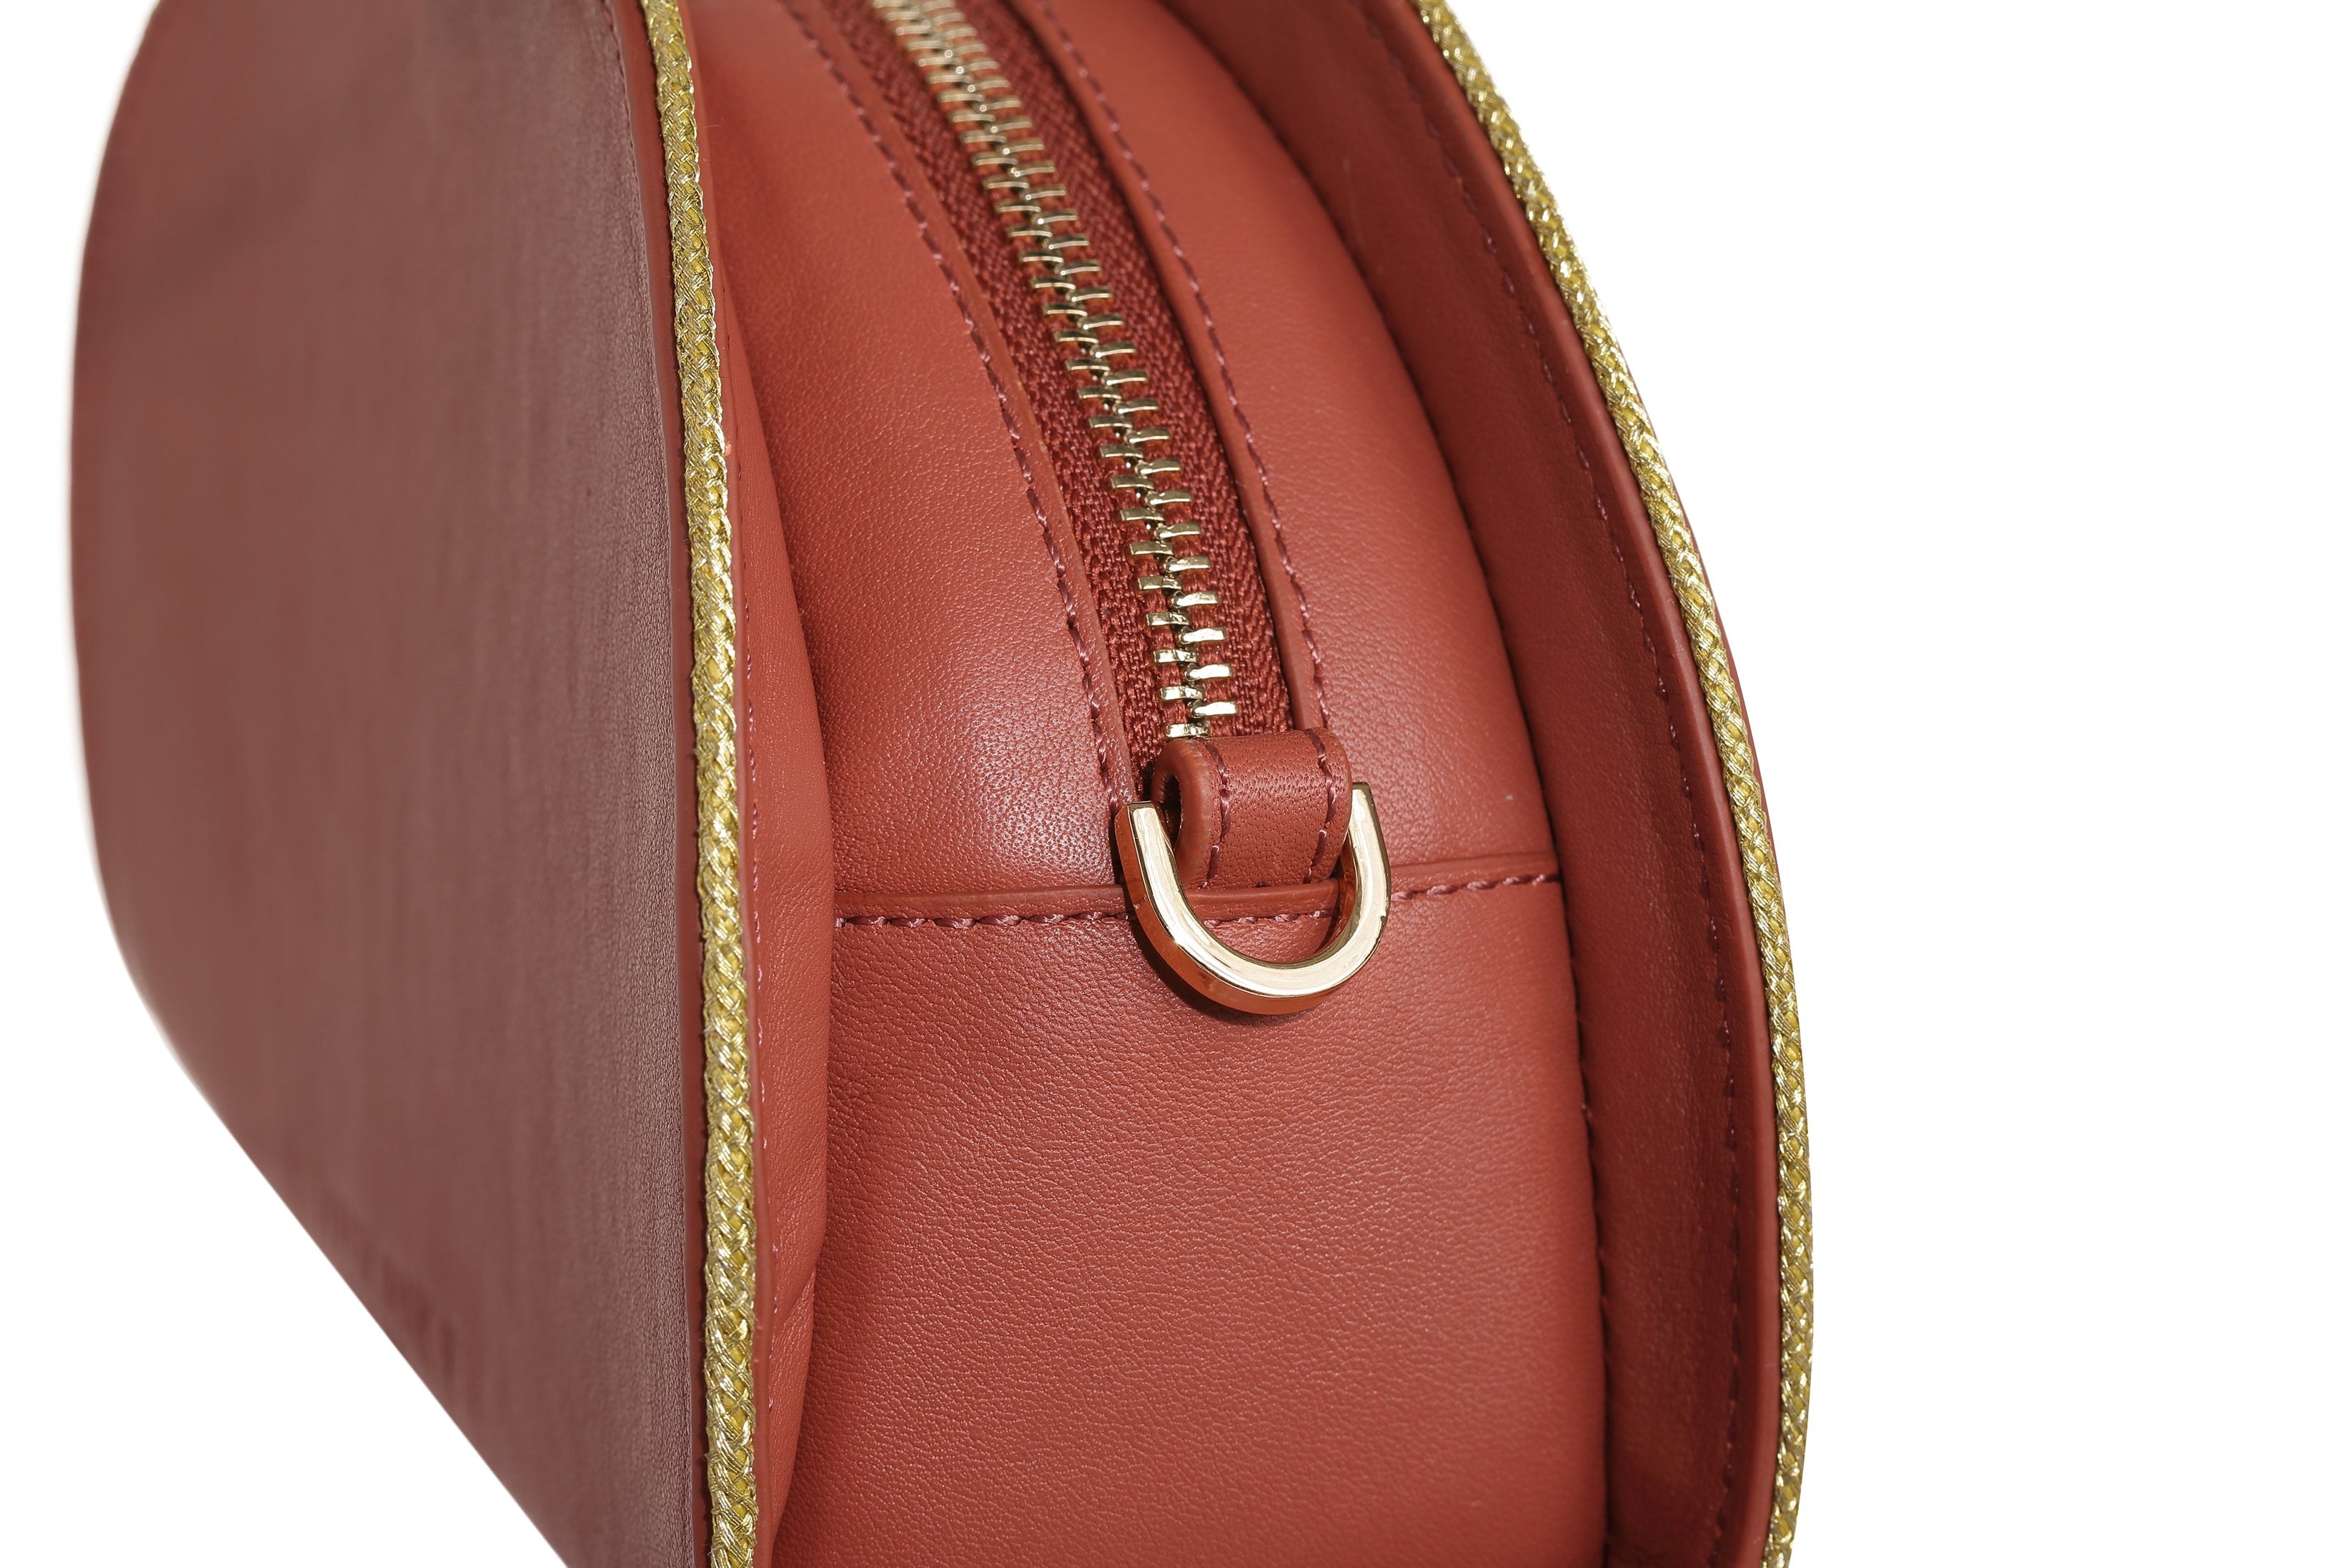 Chelsea Rosewood Leather Clutch Bag